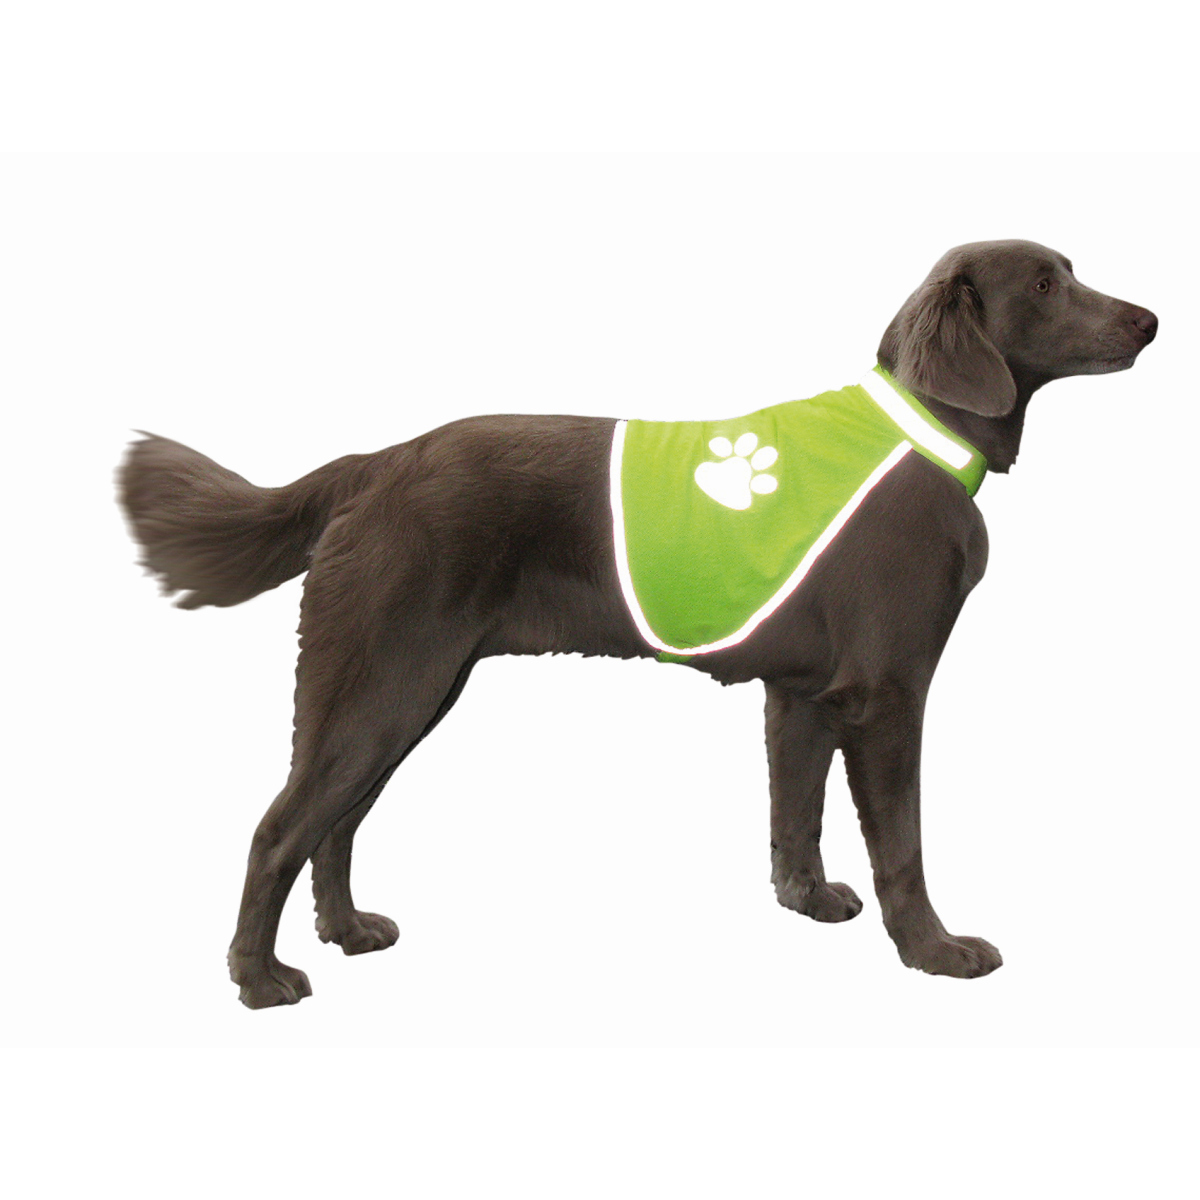 NB HONDEN SAFETY VEST S 00001